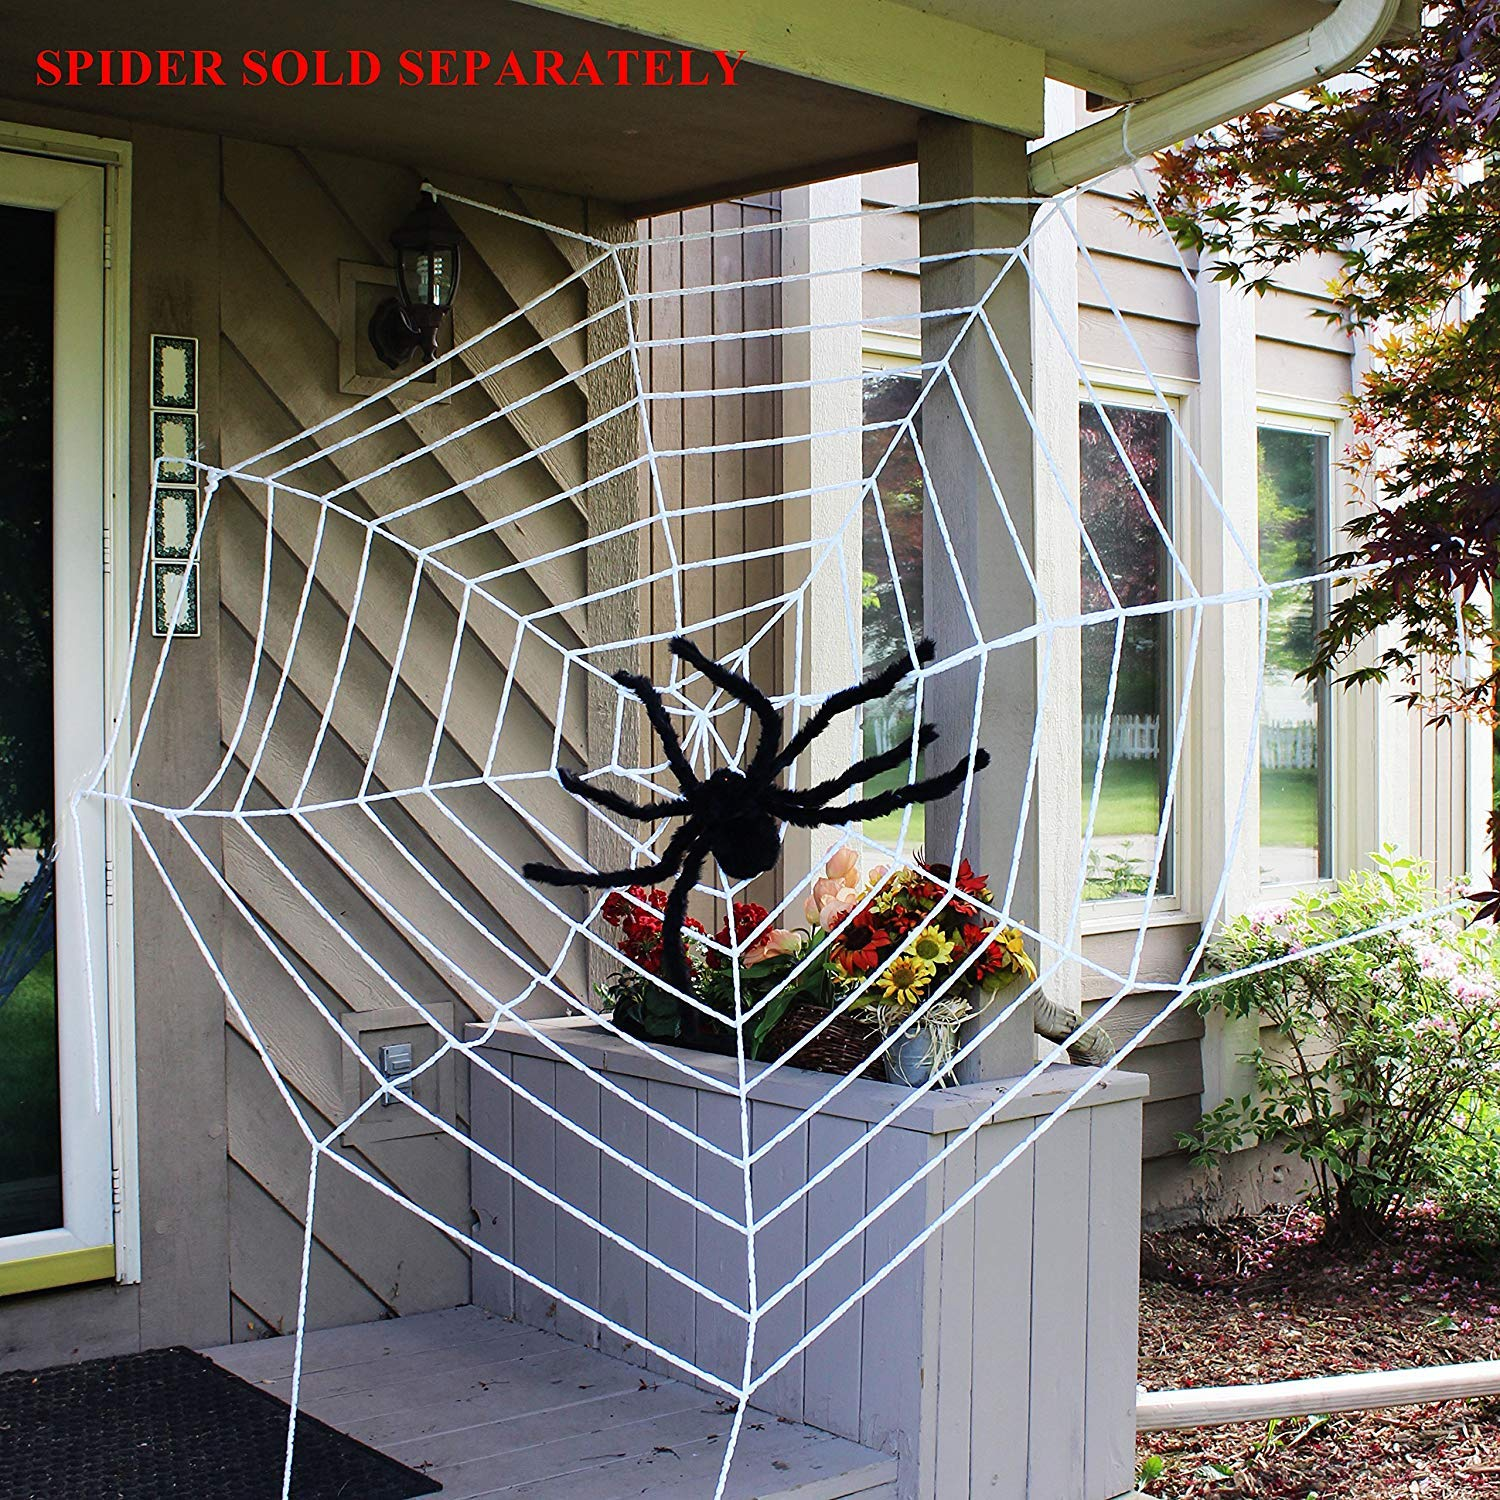 Halloween 2 Pack 9ft Mega Spider Web for Halloween Outdoor Yard Decoration - 1 Black and 1 White